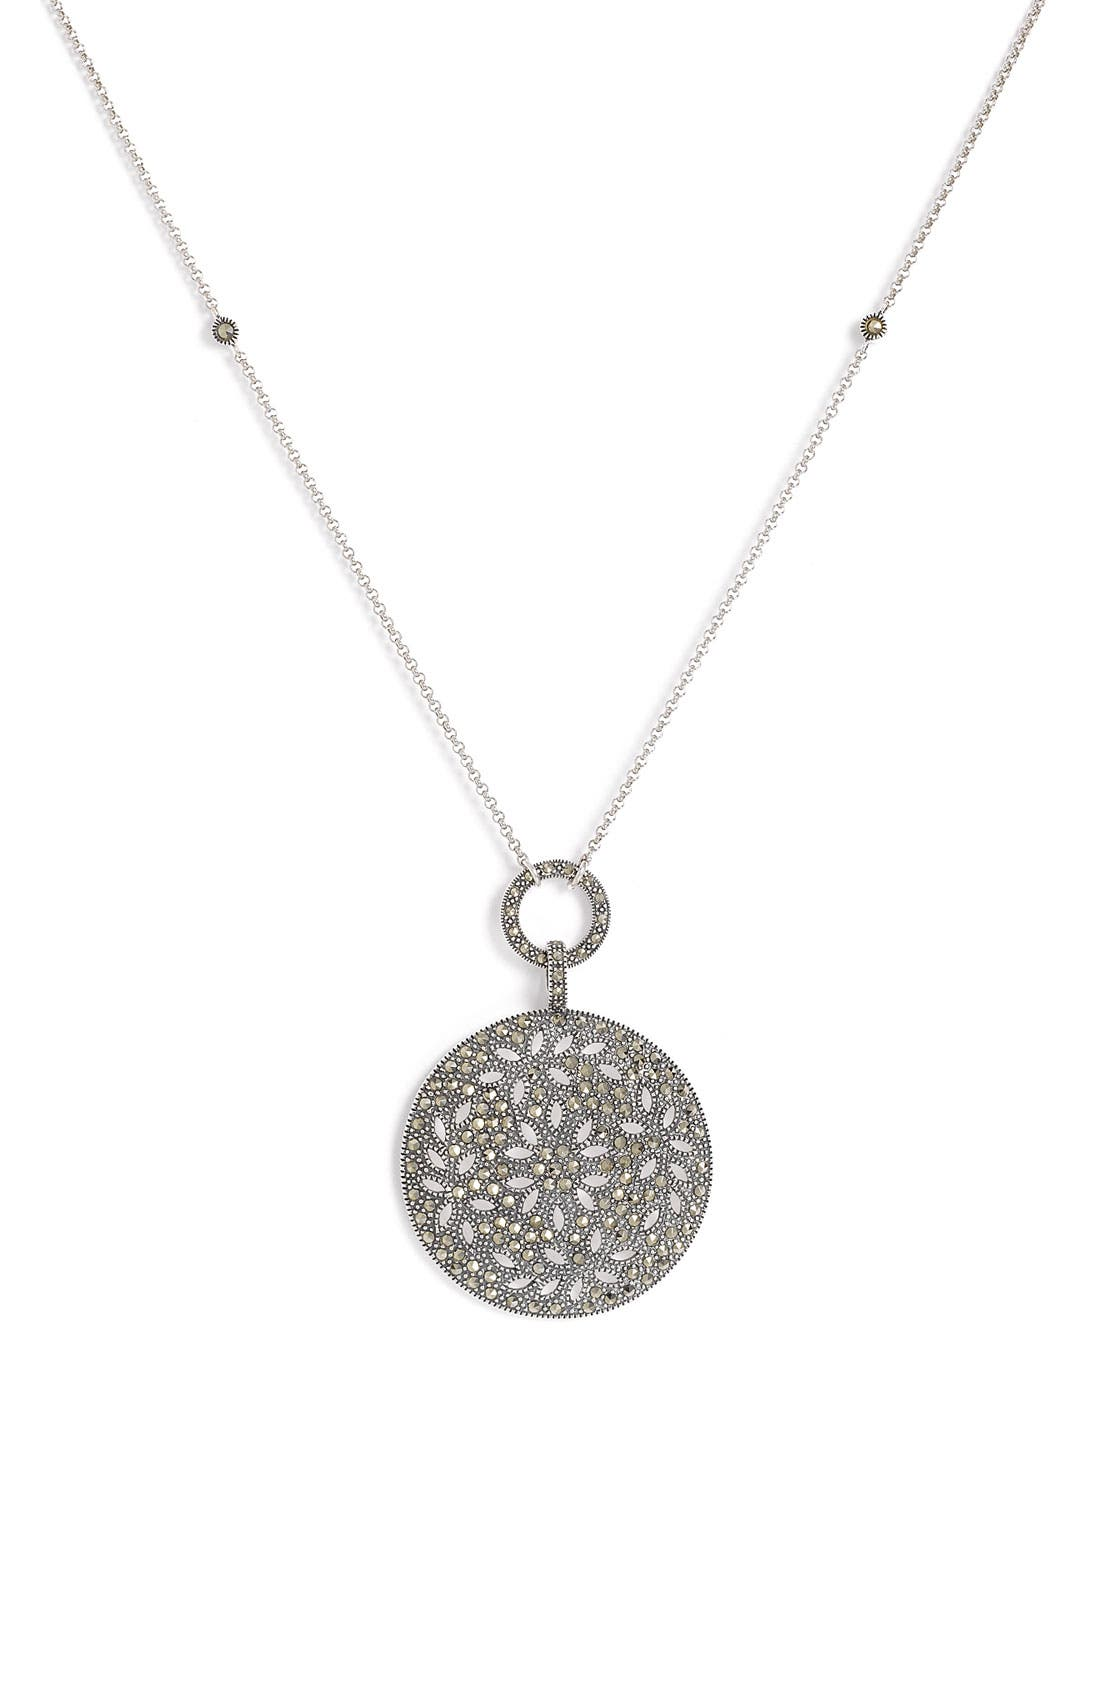 Main Image - Judith Jack Round Pendant Convertible Necklace